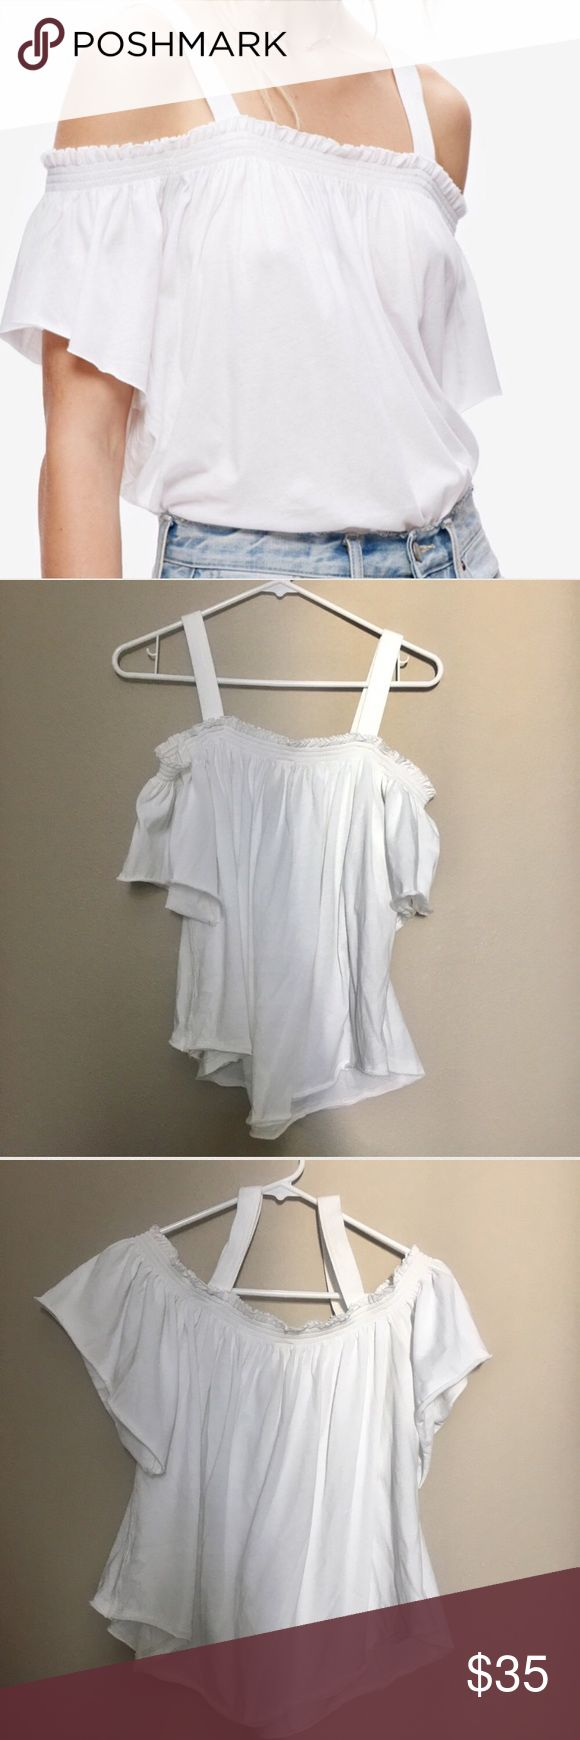 """Free People Cold Shoulder White Top Size Medium Free People Cold Shoulder White Top  •Like new! •Lightweight and comfortable! •Stretchy elastic band around chest and shoulders   •Approximate Measurements: Bust: 34.5"""" Neckline to bottom: 18""""  Ships SAME or NEXT DAY from a SMOKE-FREE environment! Free People Tops Blouses"""